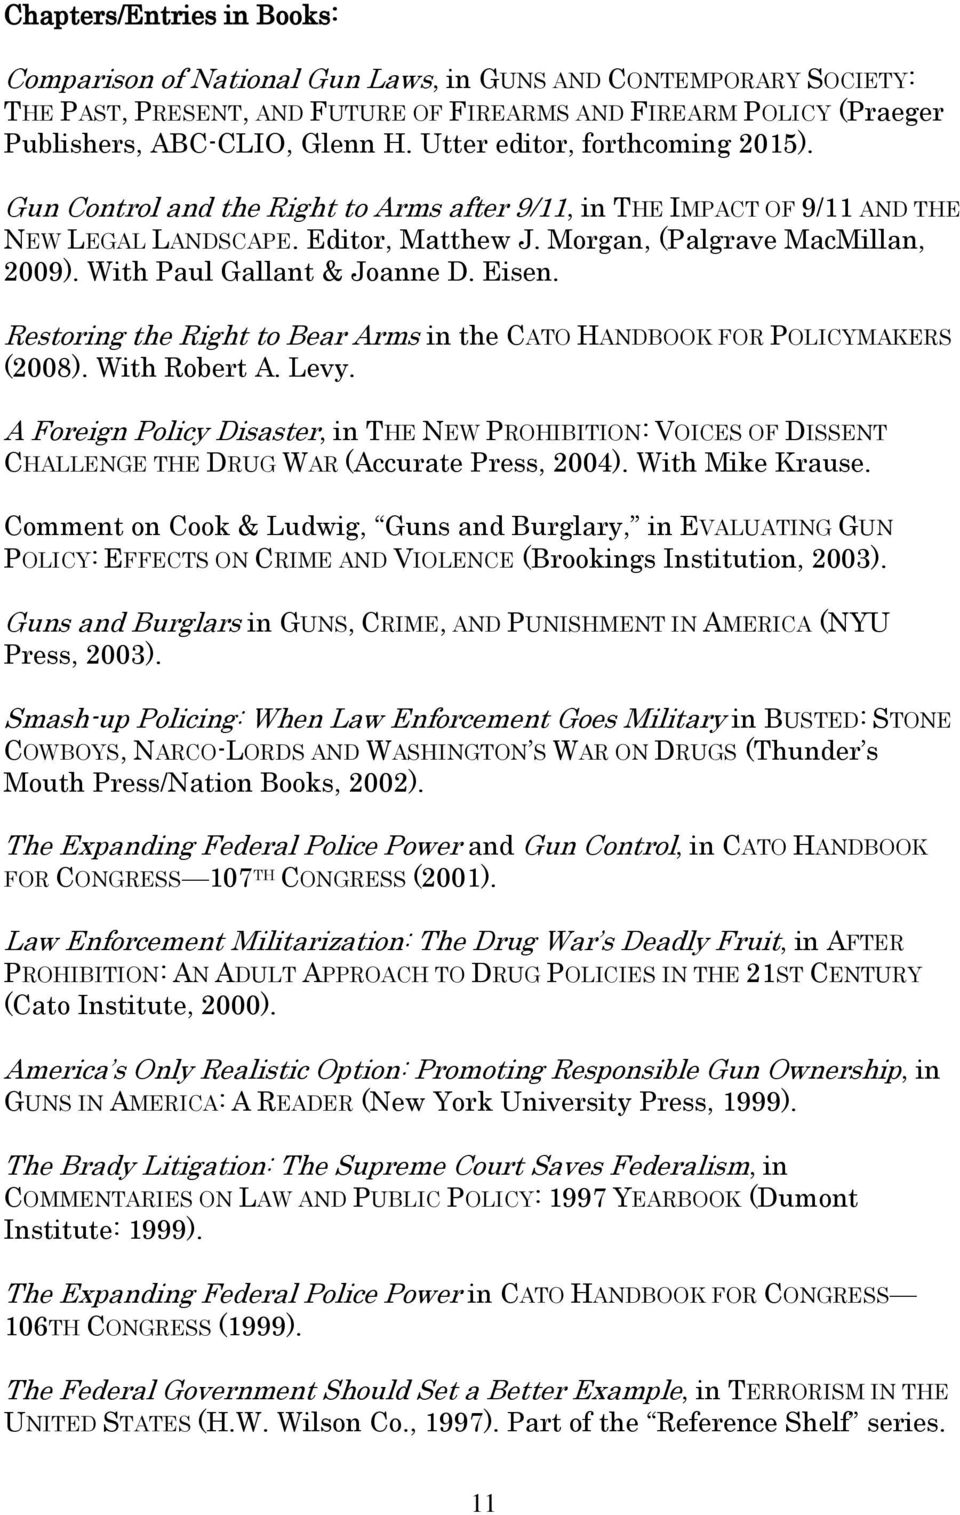 With Paul Gallant & Joanne D. Eisen. Restoring the Right to Bear Arms in the CATO HANDBOOK FOR POLICYMAKERS (2008). With Robert A. Levy.